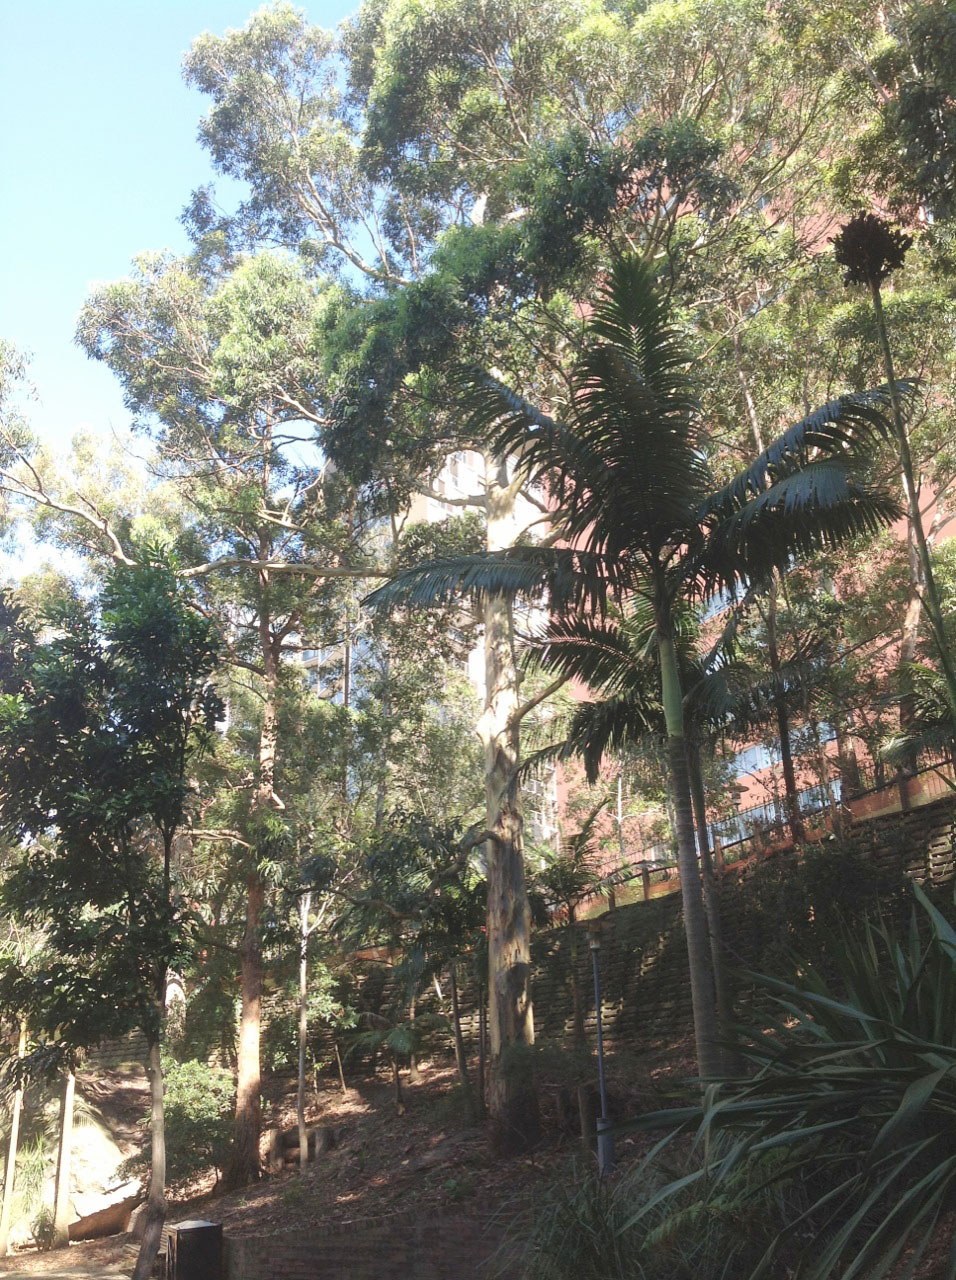 Sydney Blue Gums and native understorey plants and palms